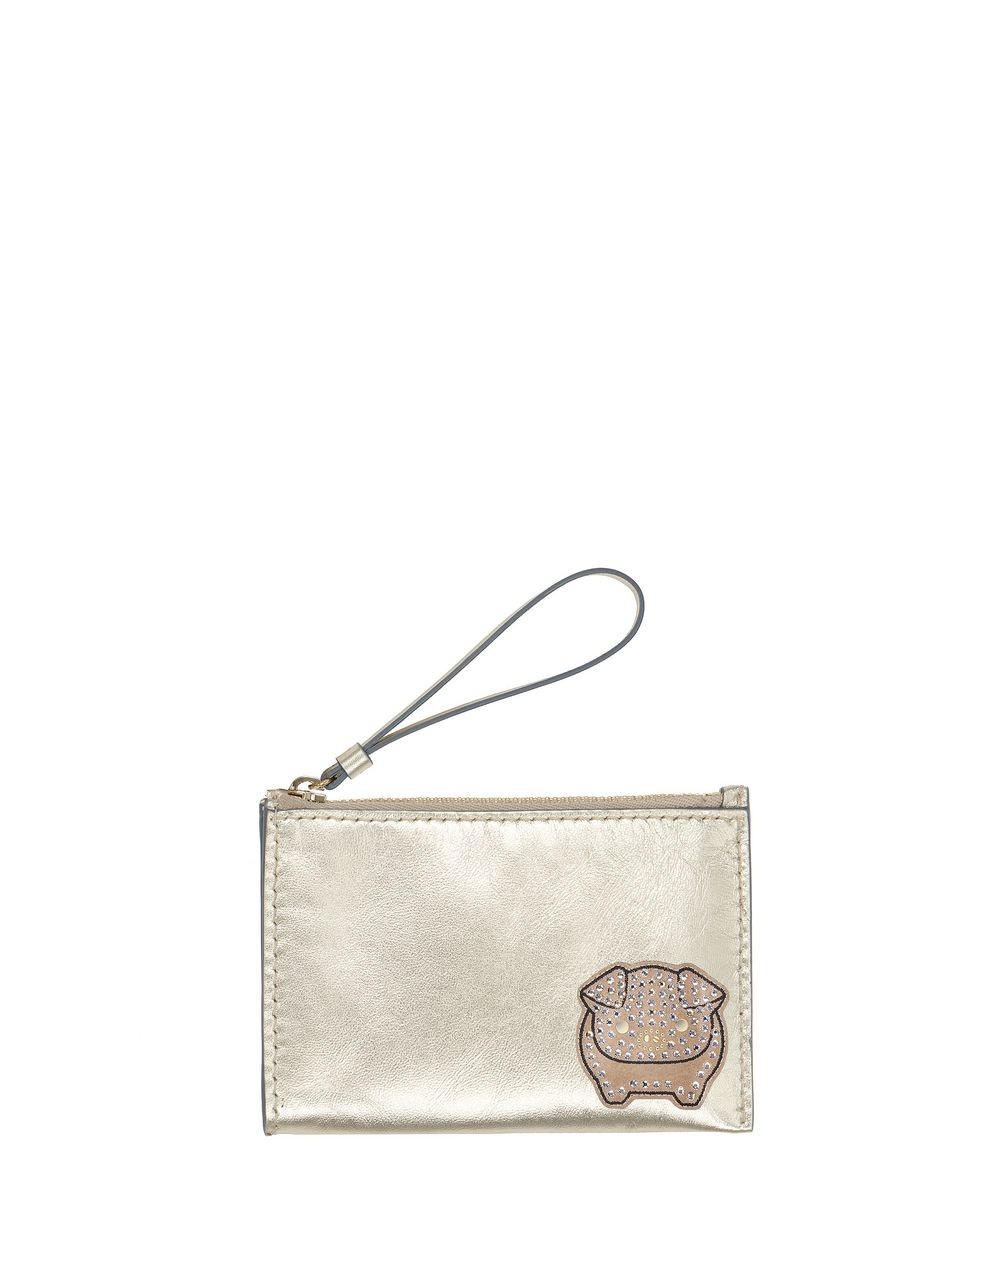 MEDIUM PALE GOLD EMBROIDERED CLUTCH - Lanvin